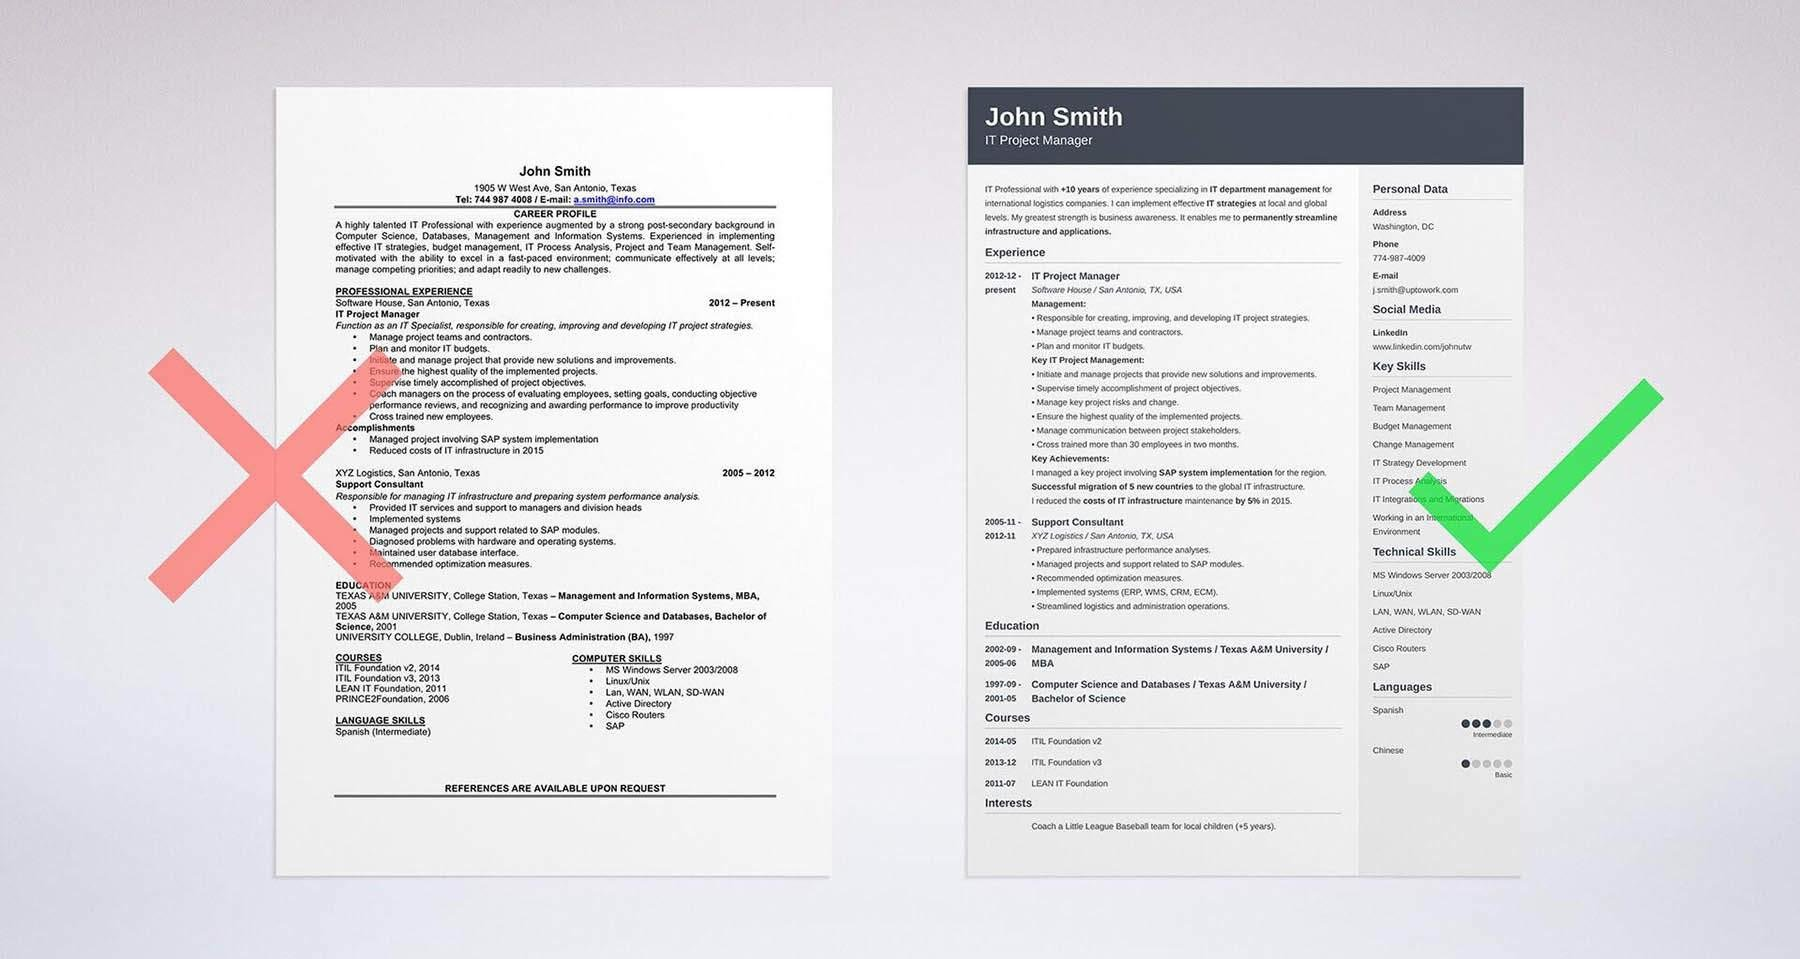 Highlight your resume objective with our templates - create your resume in  5 minutes here.